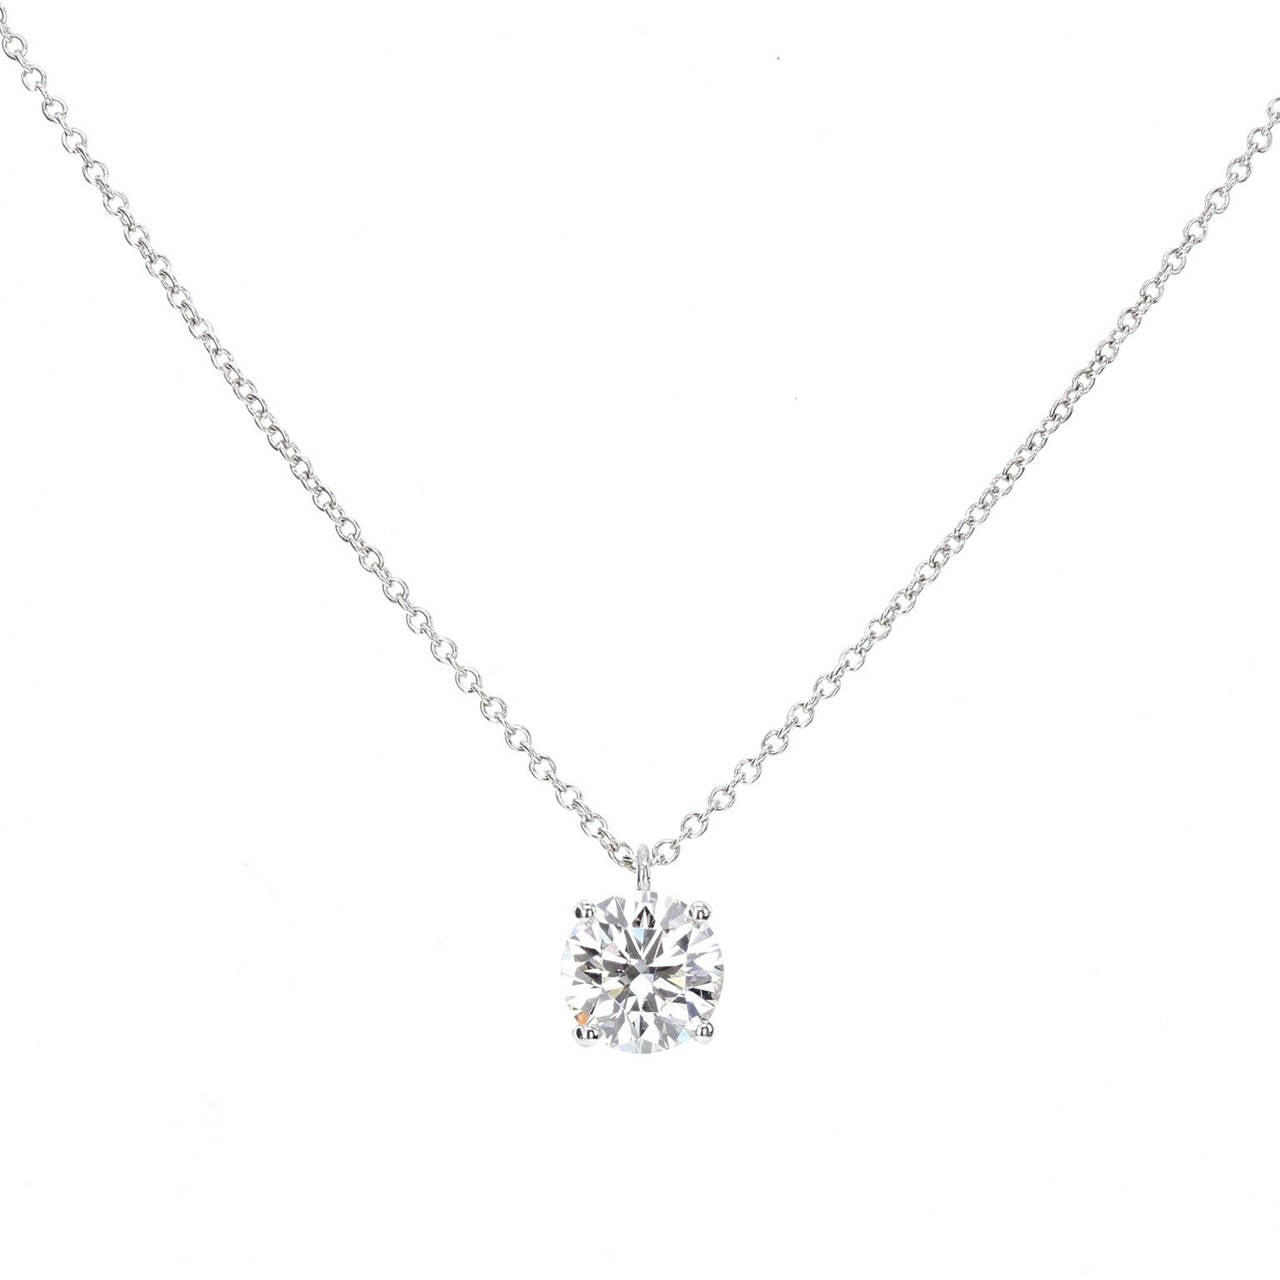 Tiffany diamond solitaire necklace famous necklace 2018 tiffany diamond solitaire pendant aloadofball Images